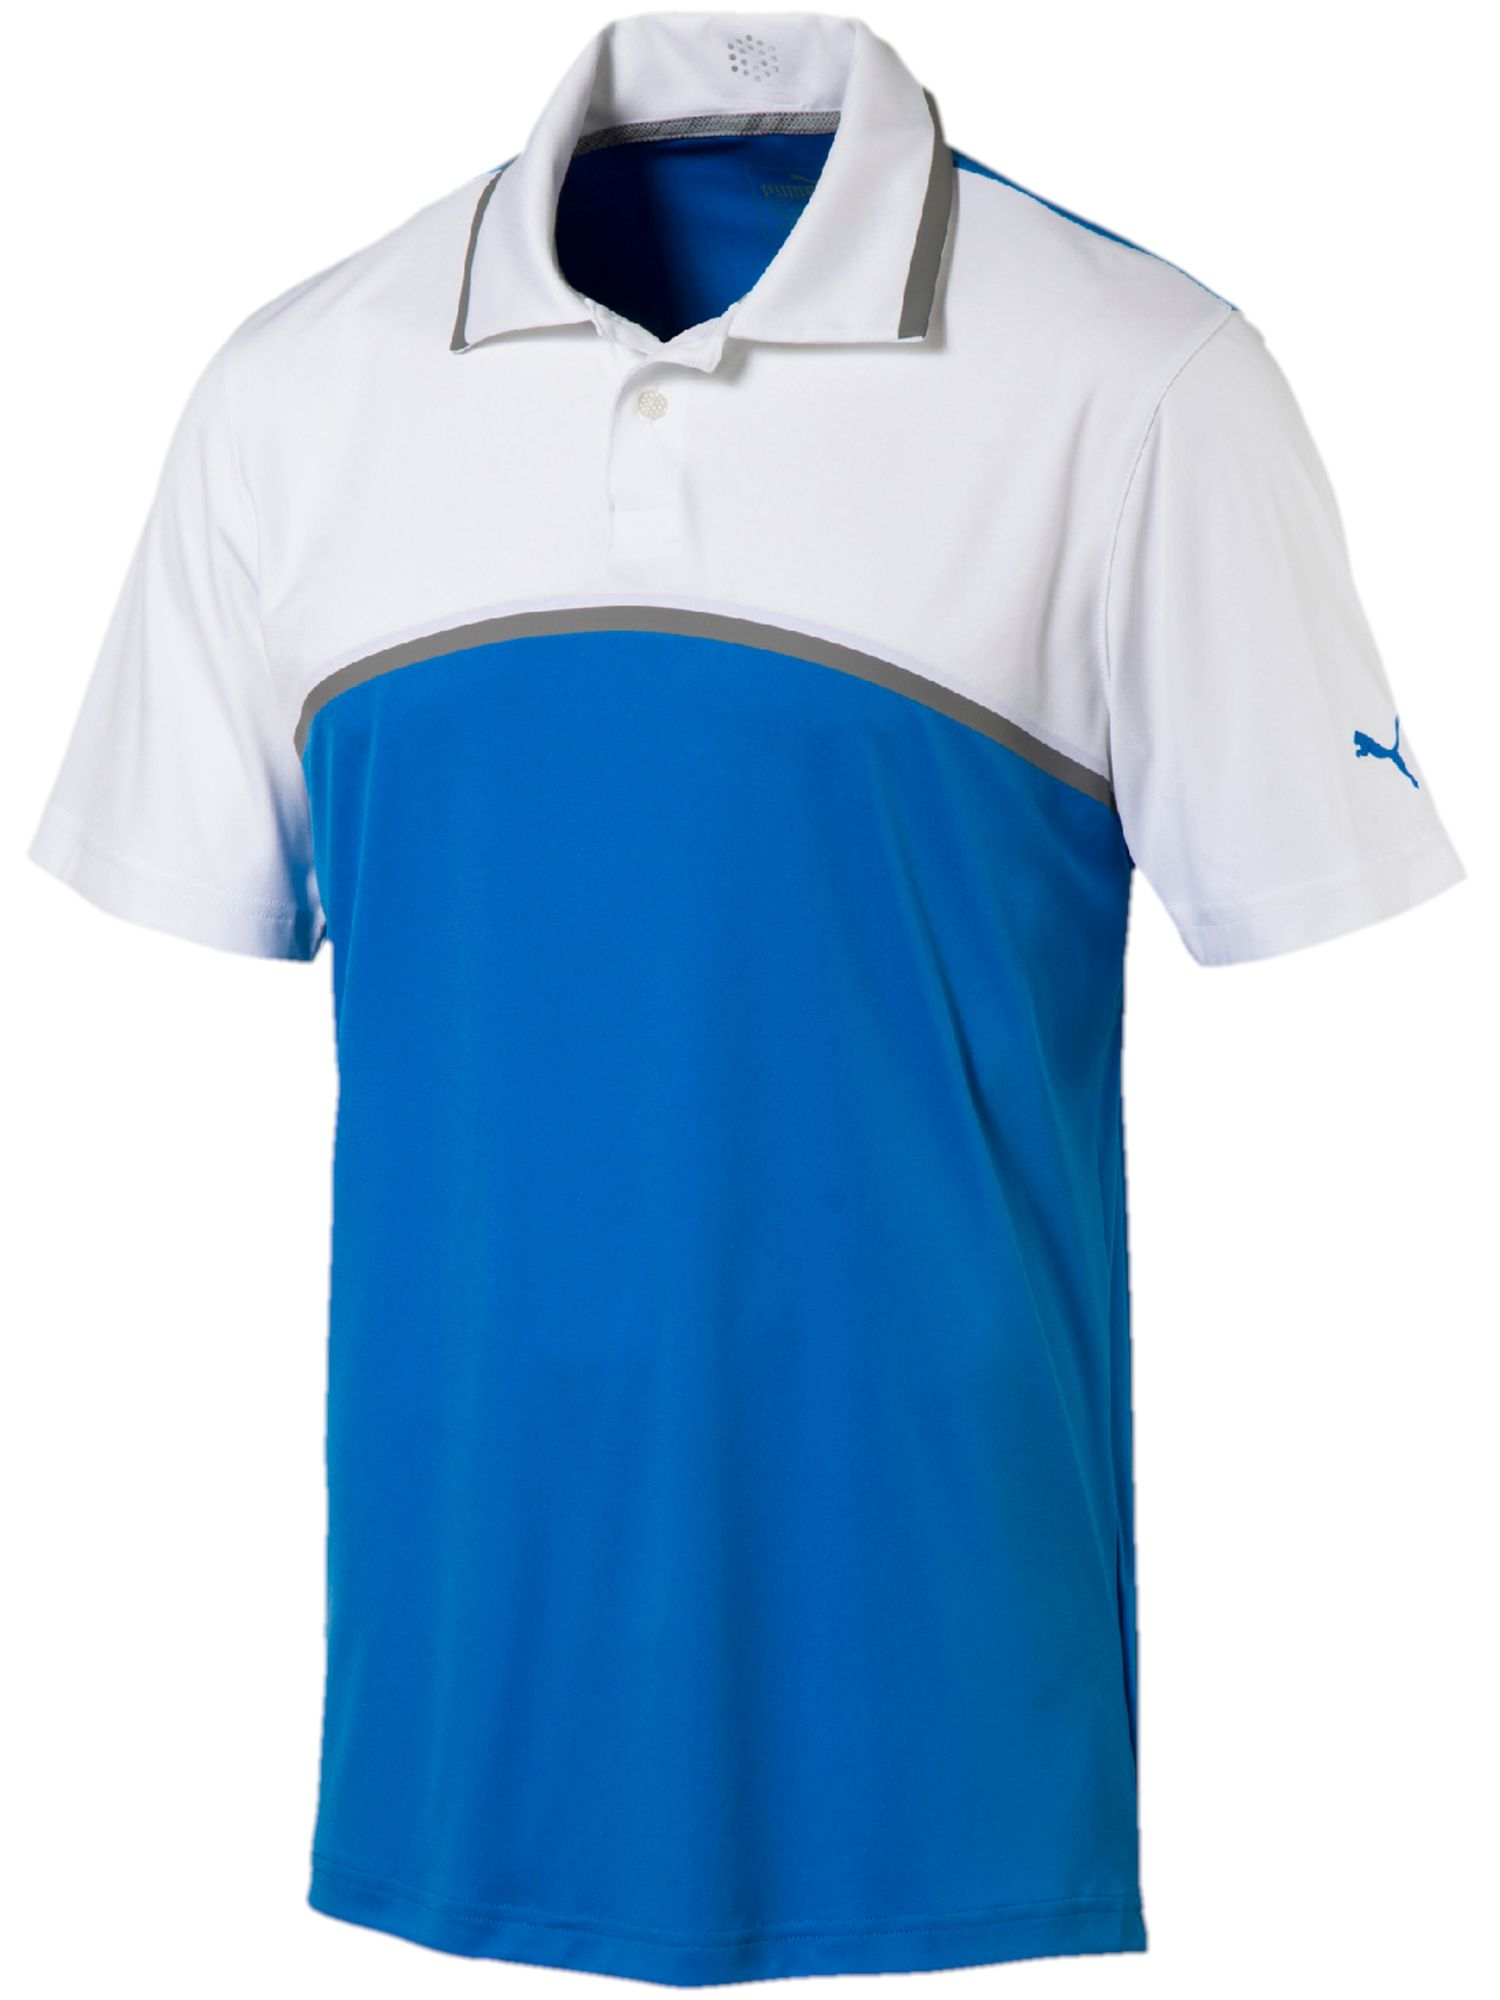 Men's Puma Tailored Colorblock Polo, Airforce Blue